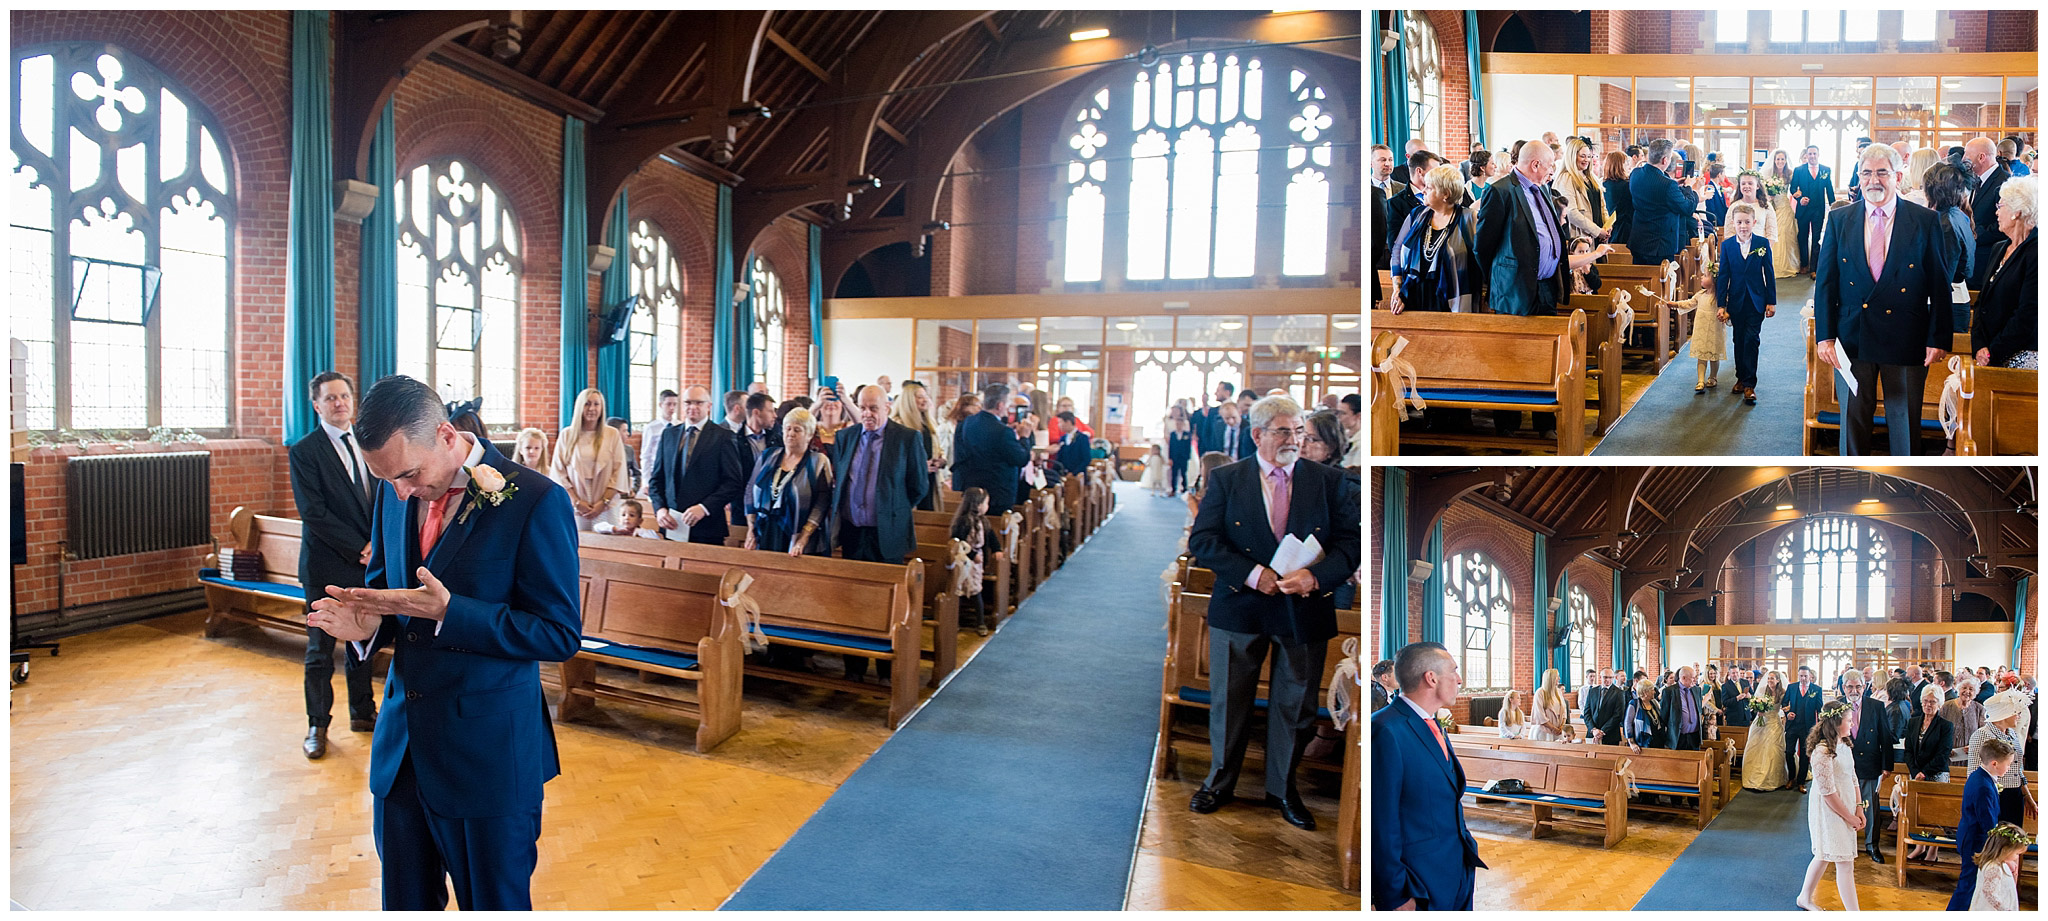 Katie-&-Steve-Victoria-Park-Methodist-Chruch-Winton-&-The-Manor-Burton-Christchurch-Wedding-16